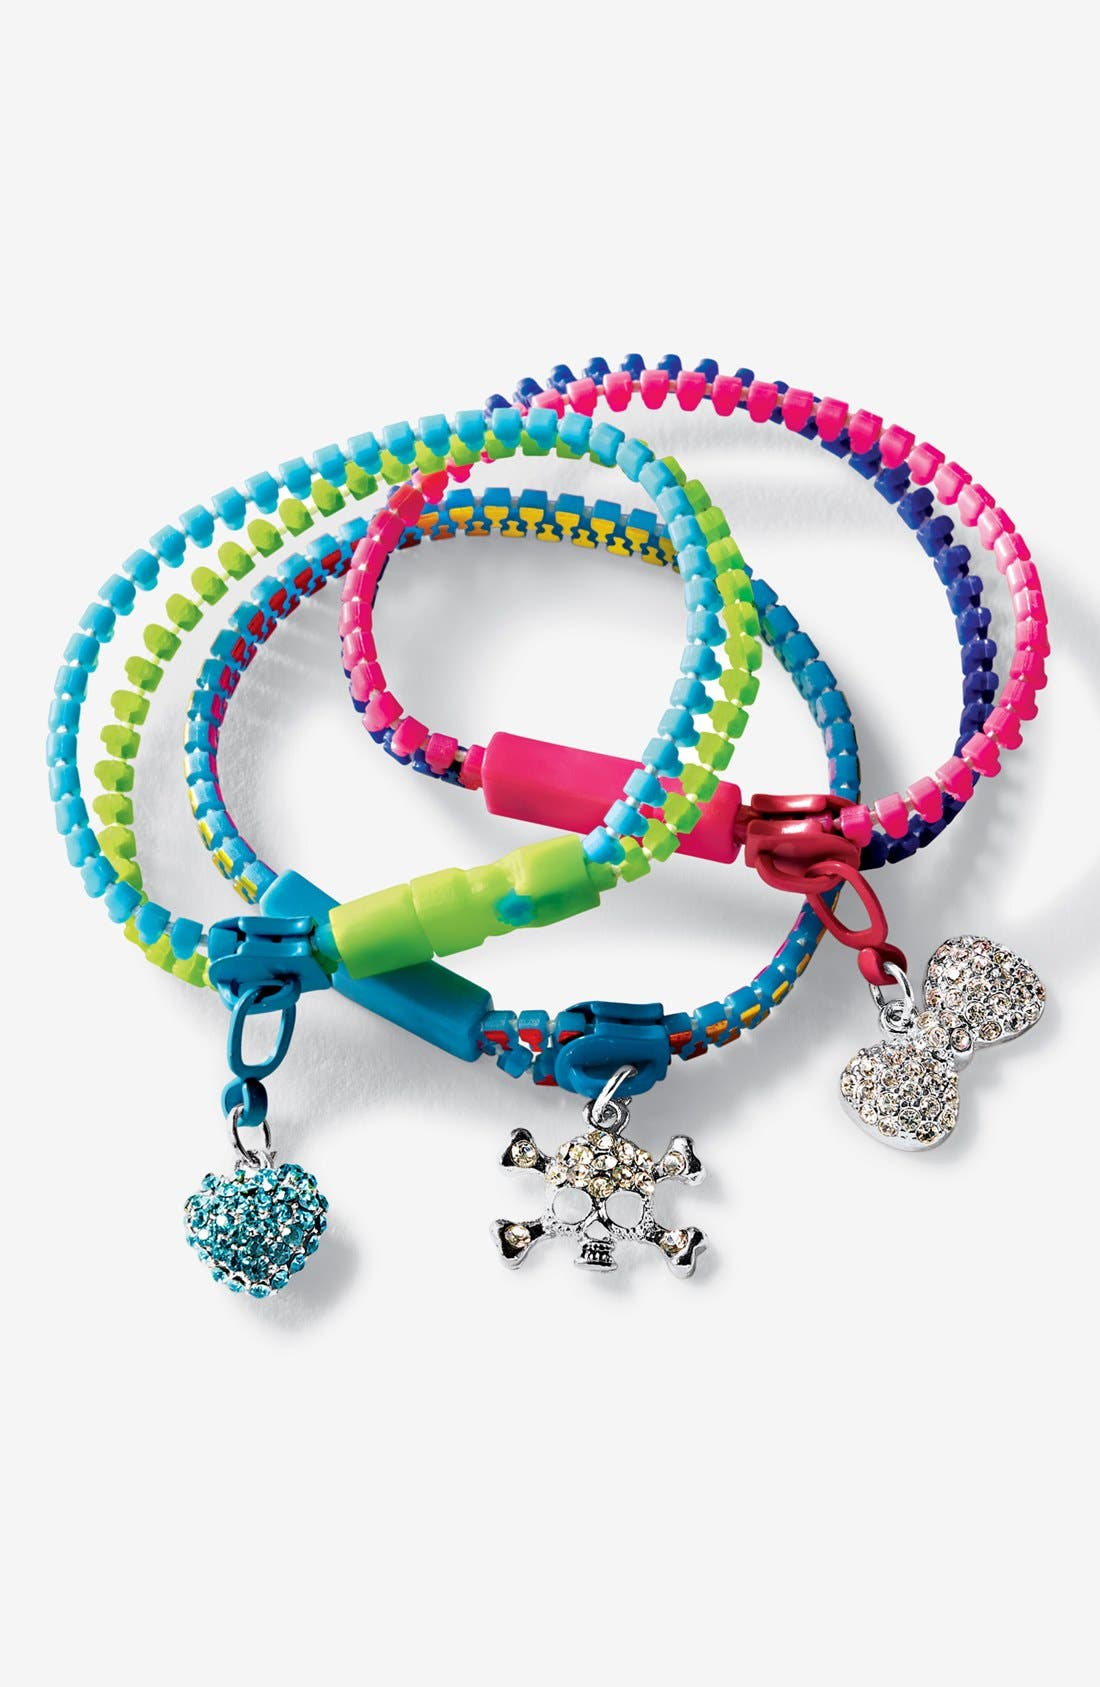 Alternate Image 1 Selected - Rolf Bleu Bracelets (Set of 3) (Girls)